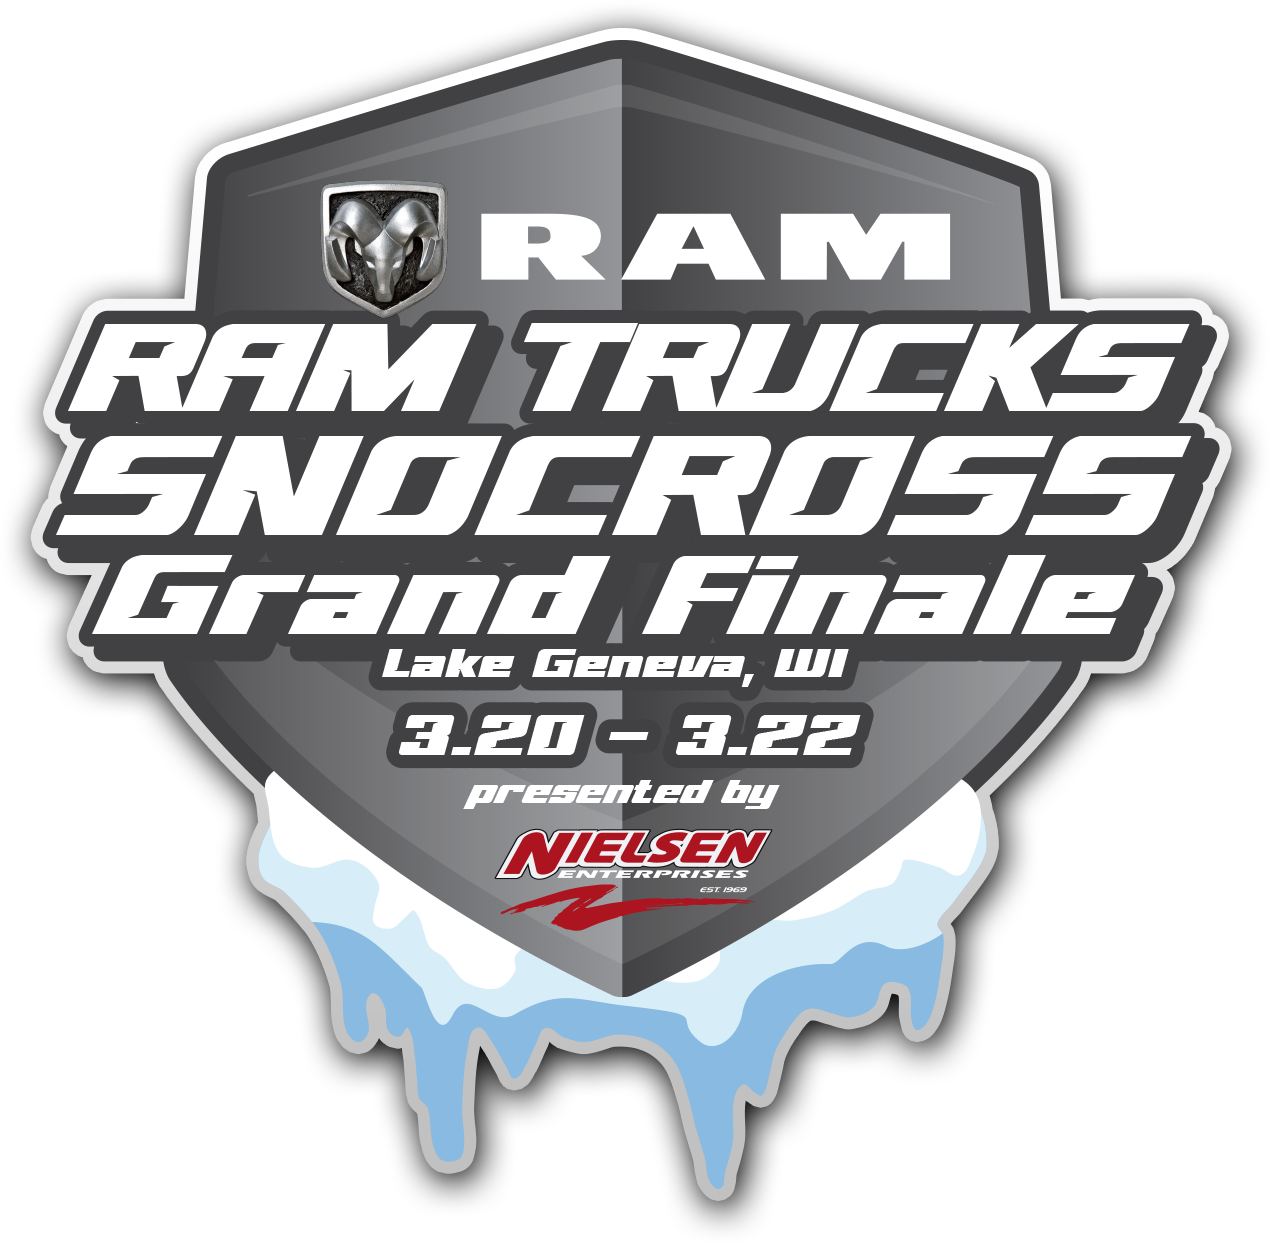 Image for Ram Trucks Snocross Grand Finale - Friday March 20 thru Sunday March 22, 2020